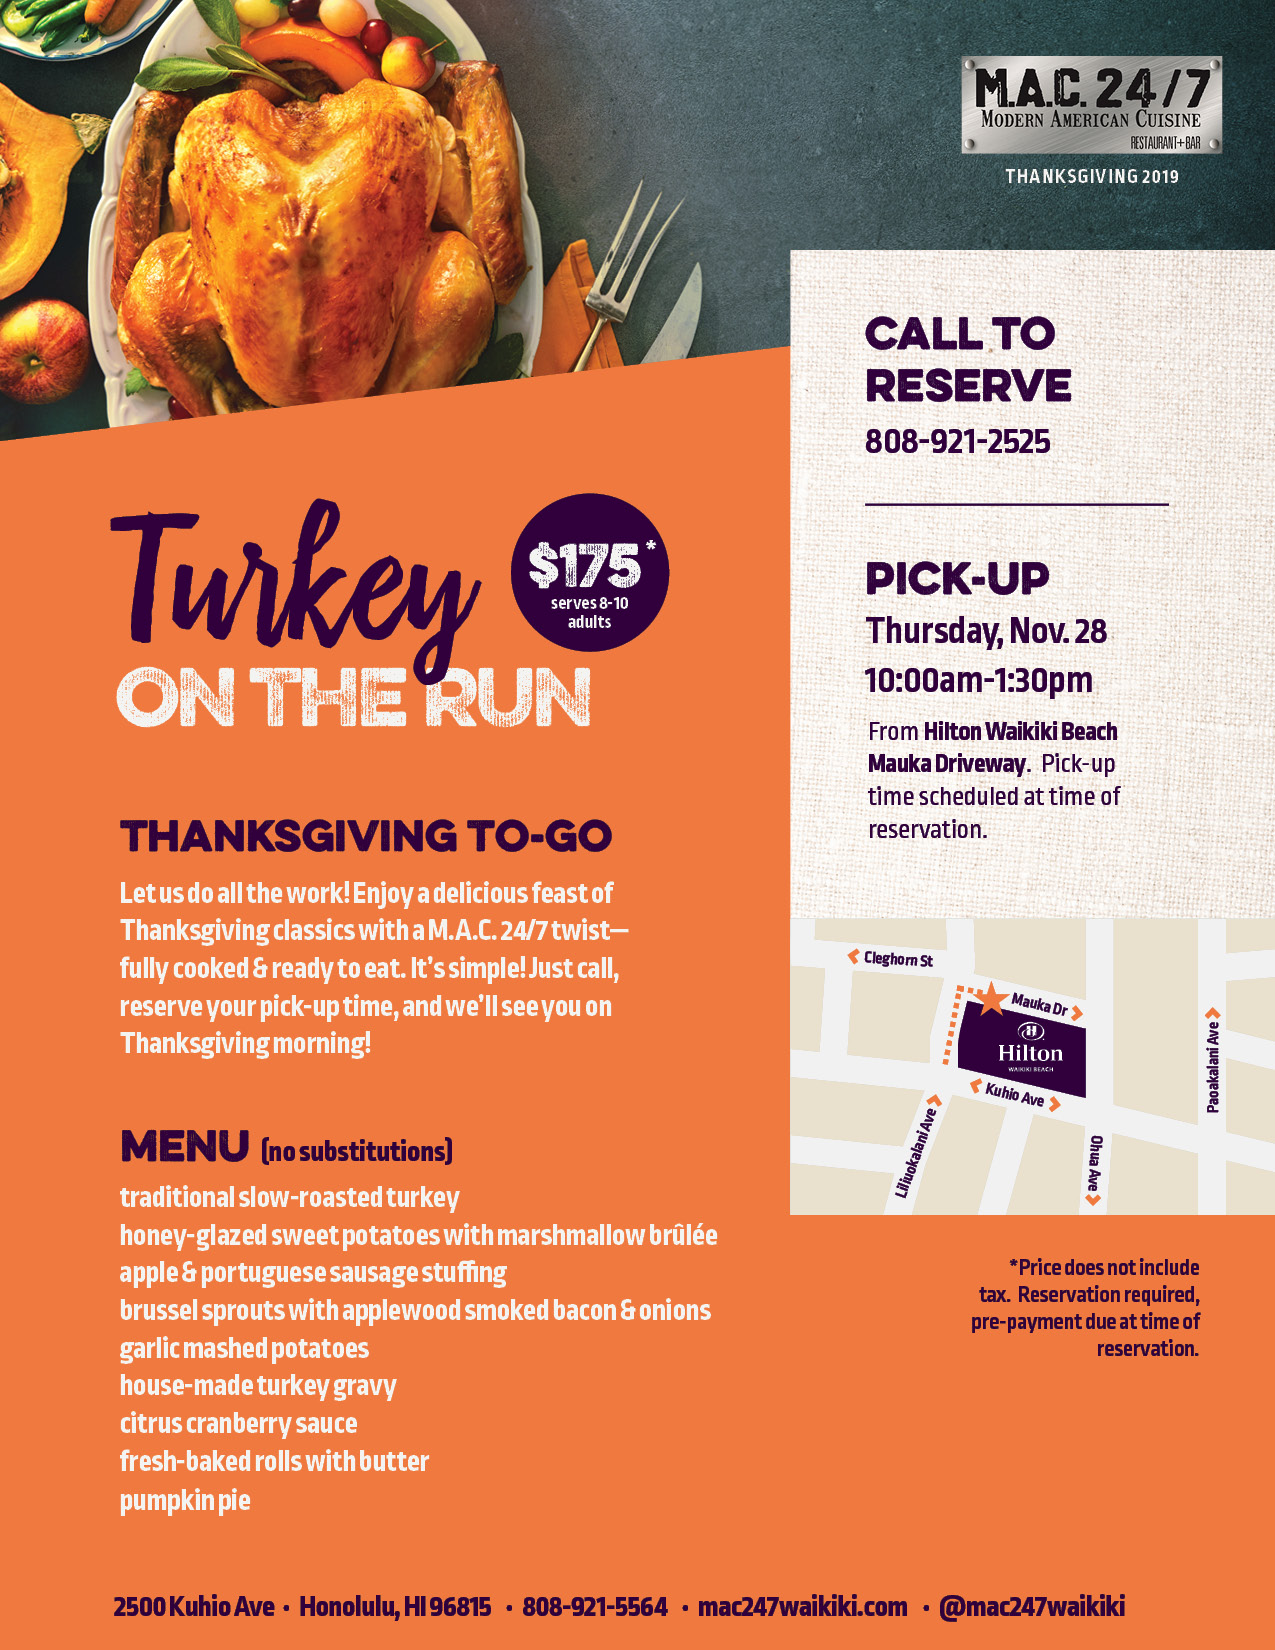 Turkey on the Run Thanksgiving To Go Menu at M.A.C. 24/7